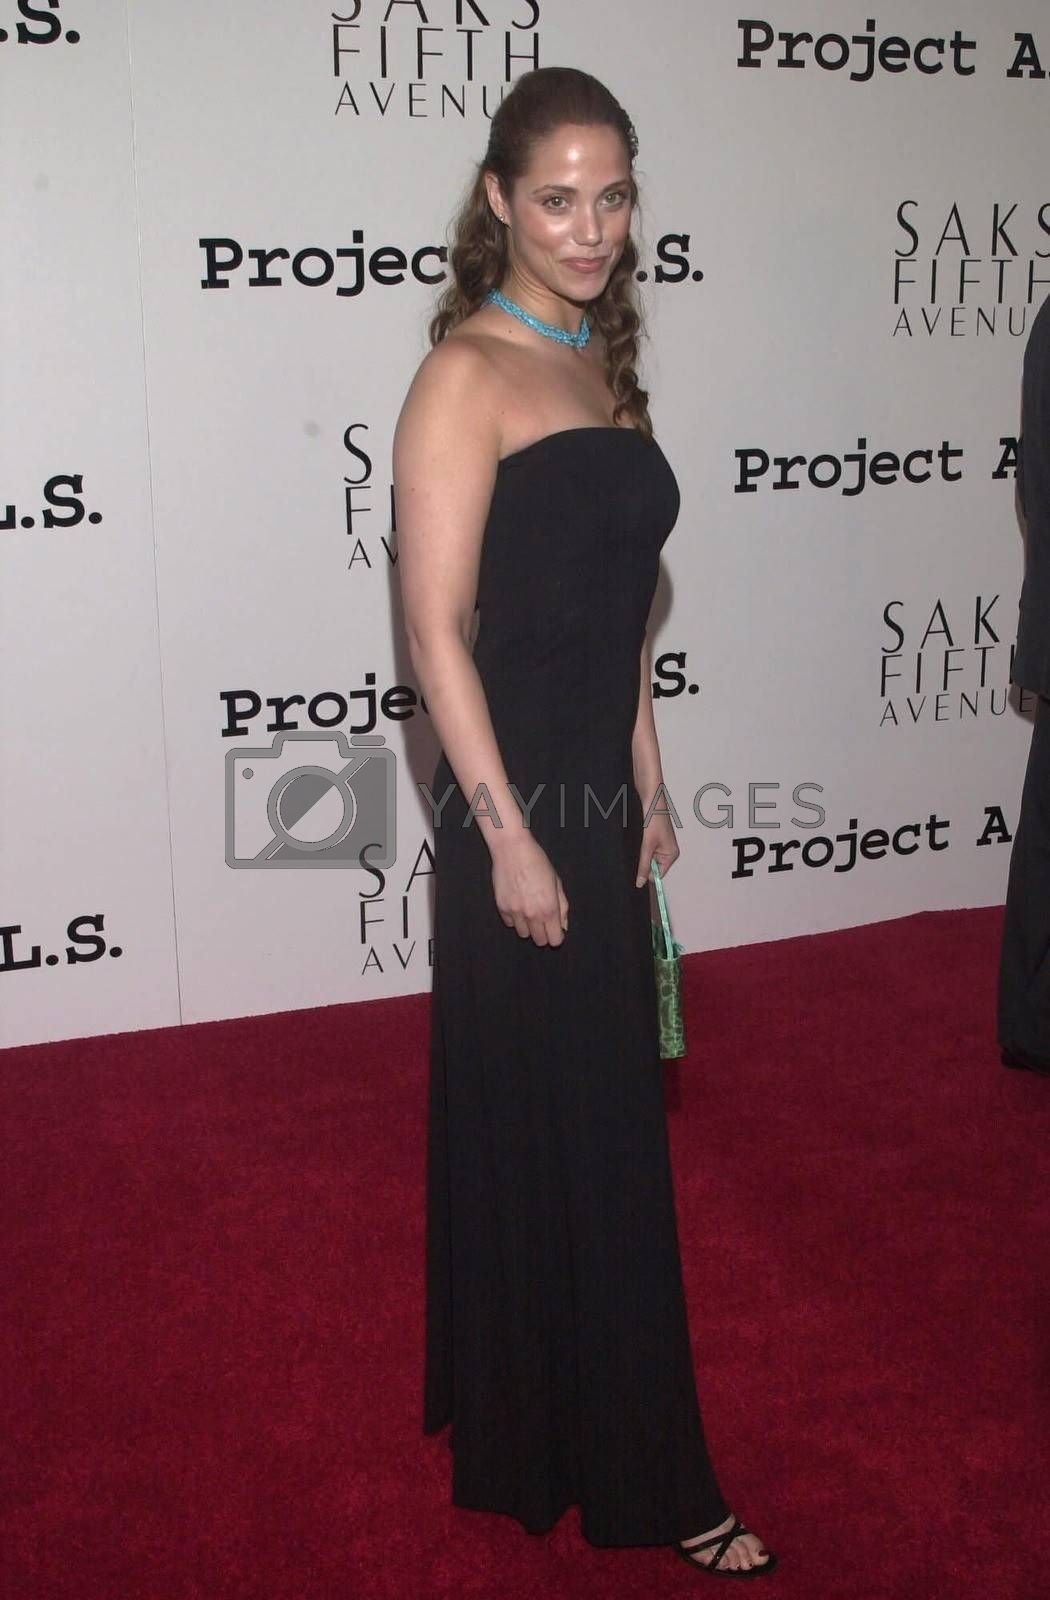 Elizabeth Berkeley at the 2nd Annual ALS Benefit at the Hollywood Palladium, 04-10-00